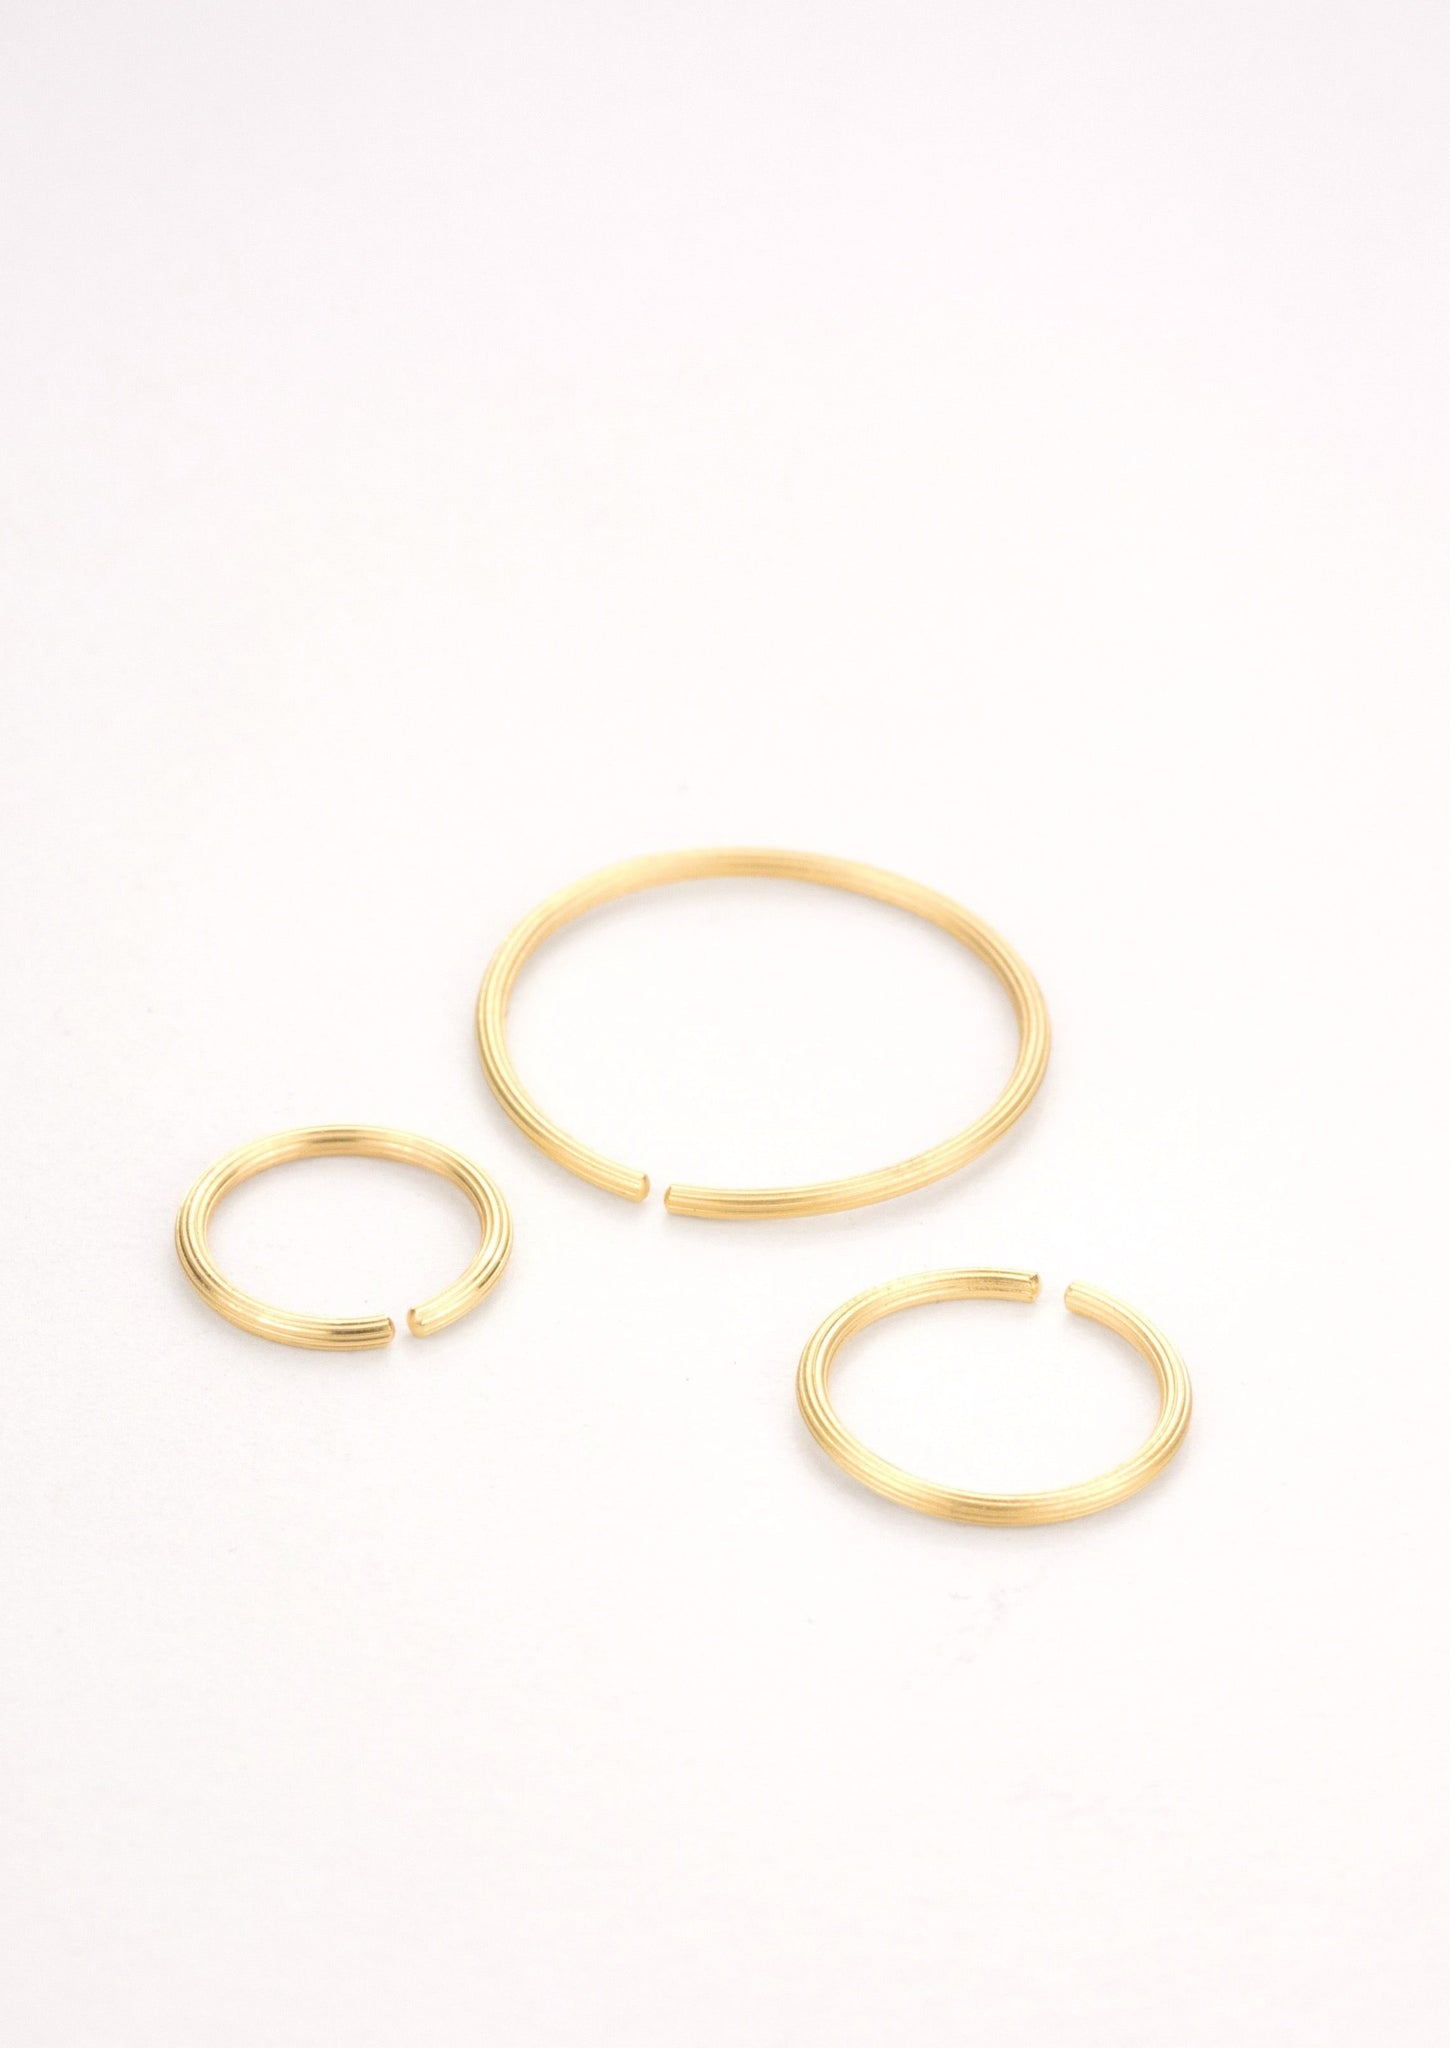 'BASIC NEEDS' Hoops, 18 kt Fairtrade gold